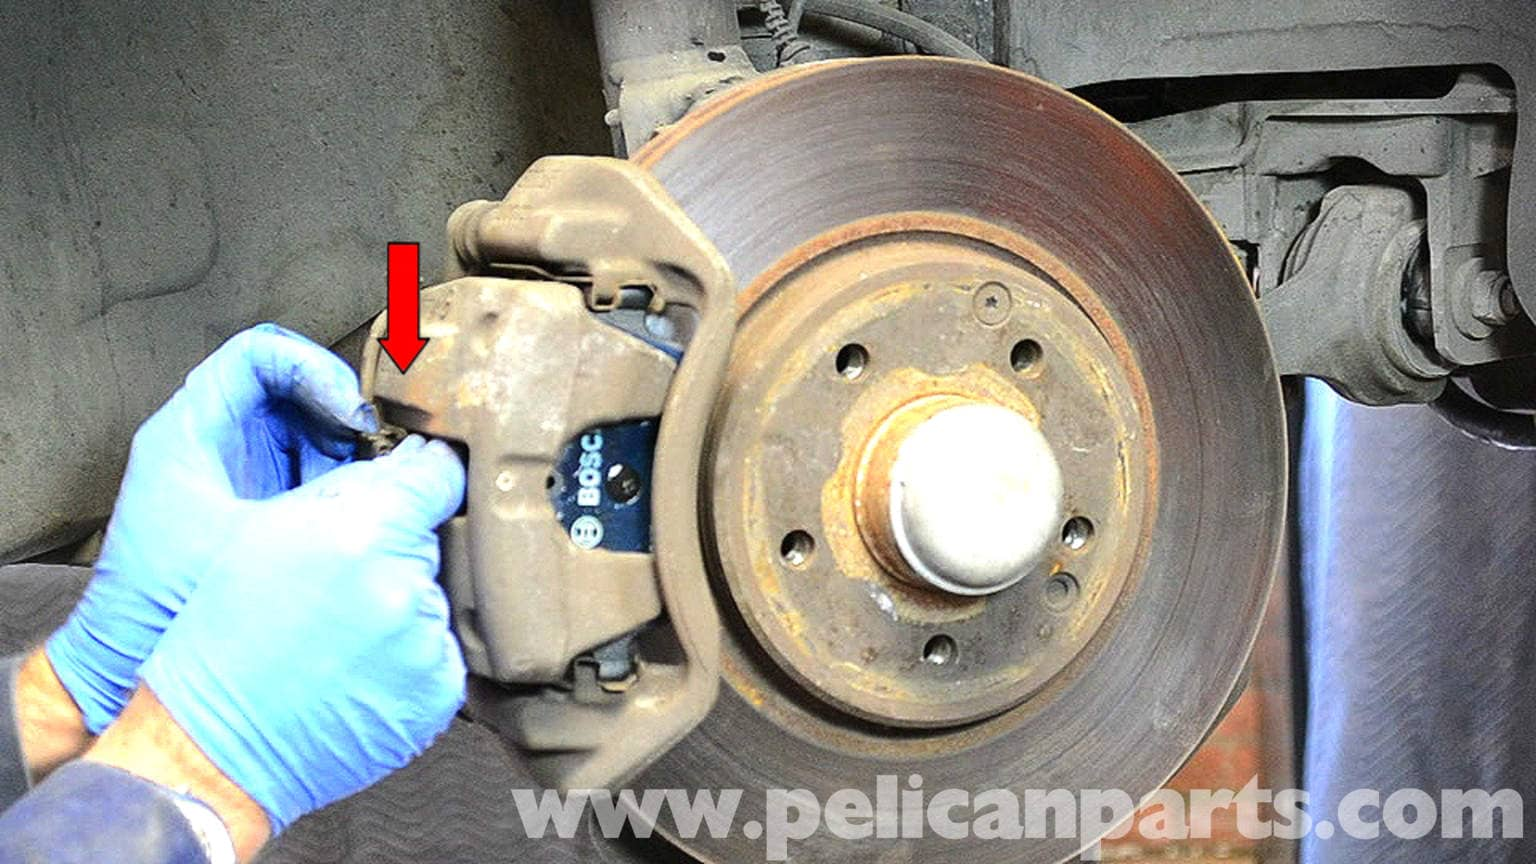 Mercedes-Benz W203 Front Brake Pad Replacement - (2001-2007